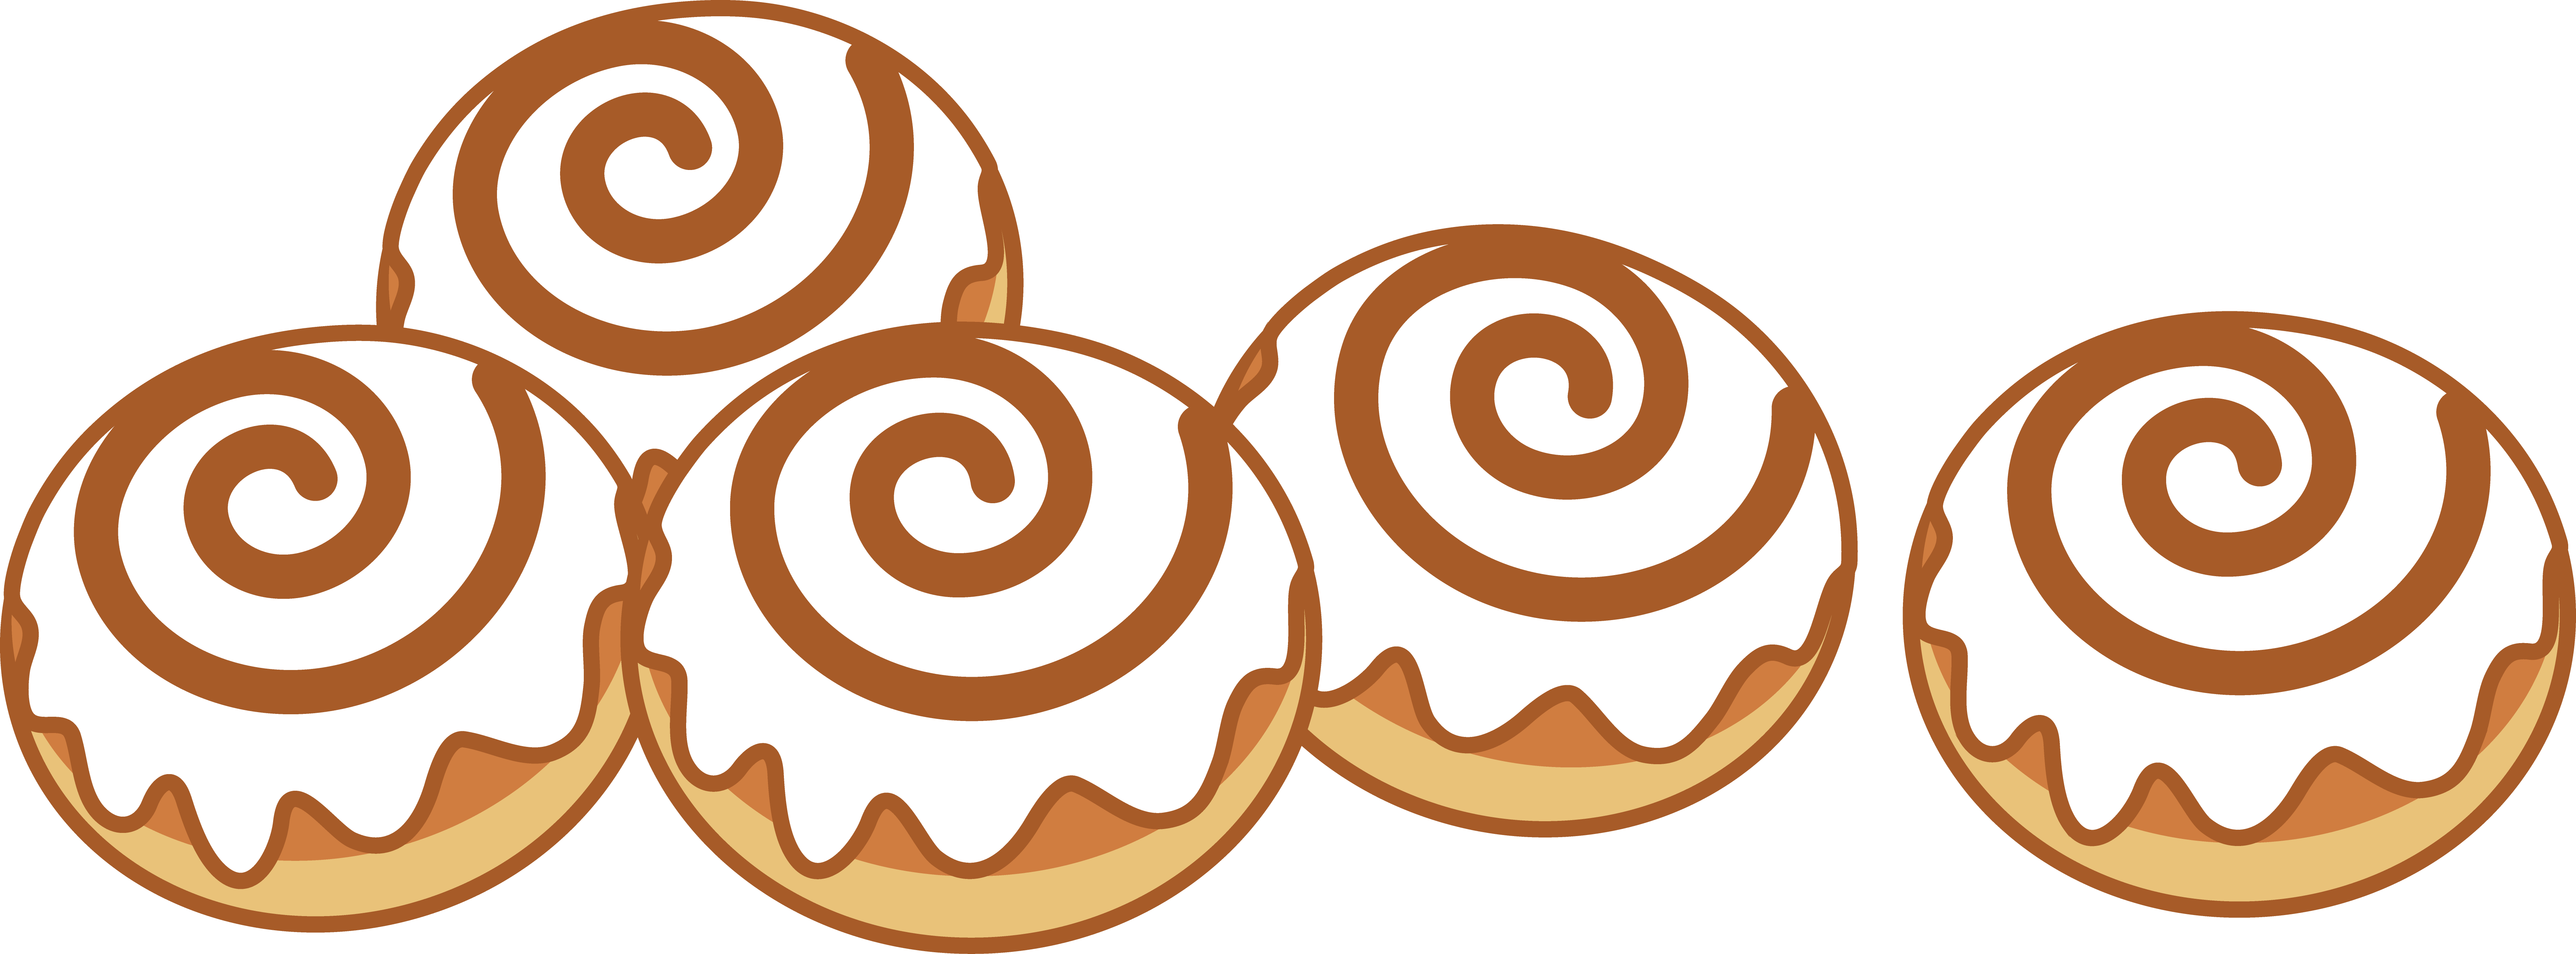 Hot cross buns clipart svg download Cinnamon Roll Clipart at GetDrawings.com | Free for personal use ... svg download